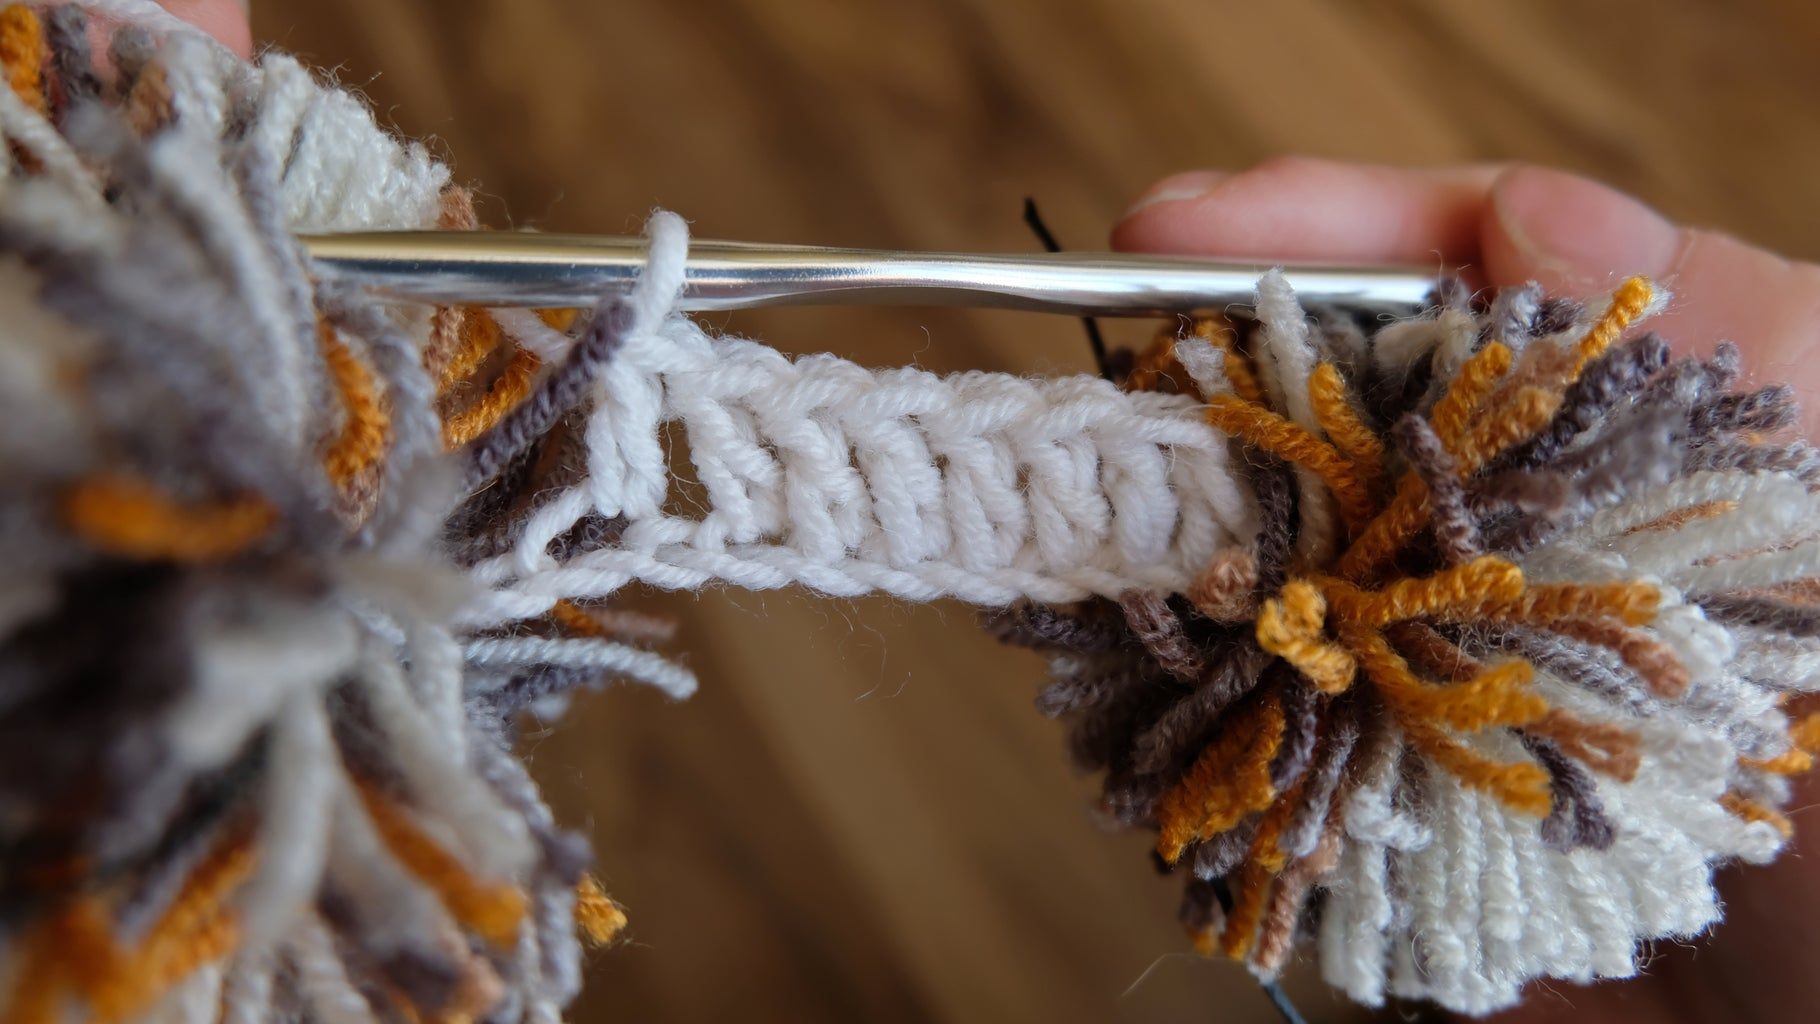 Crocheting. the Second and Third Rows